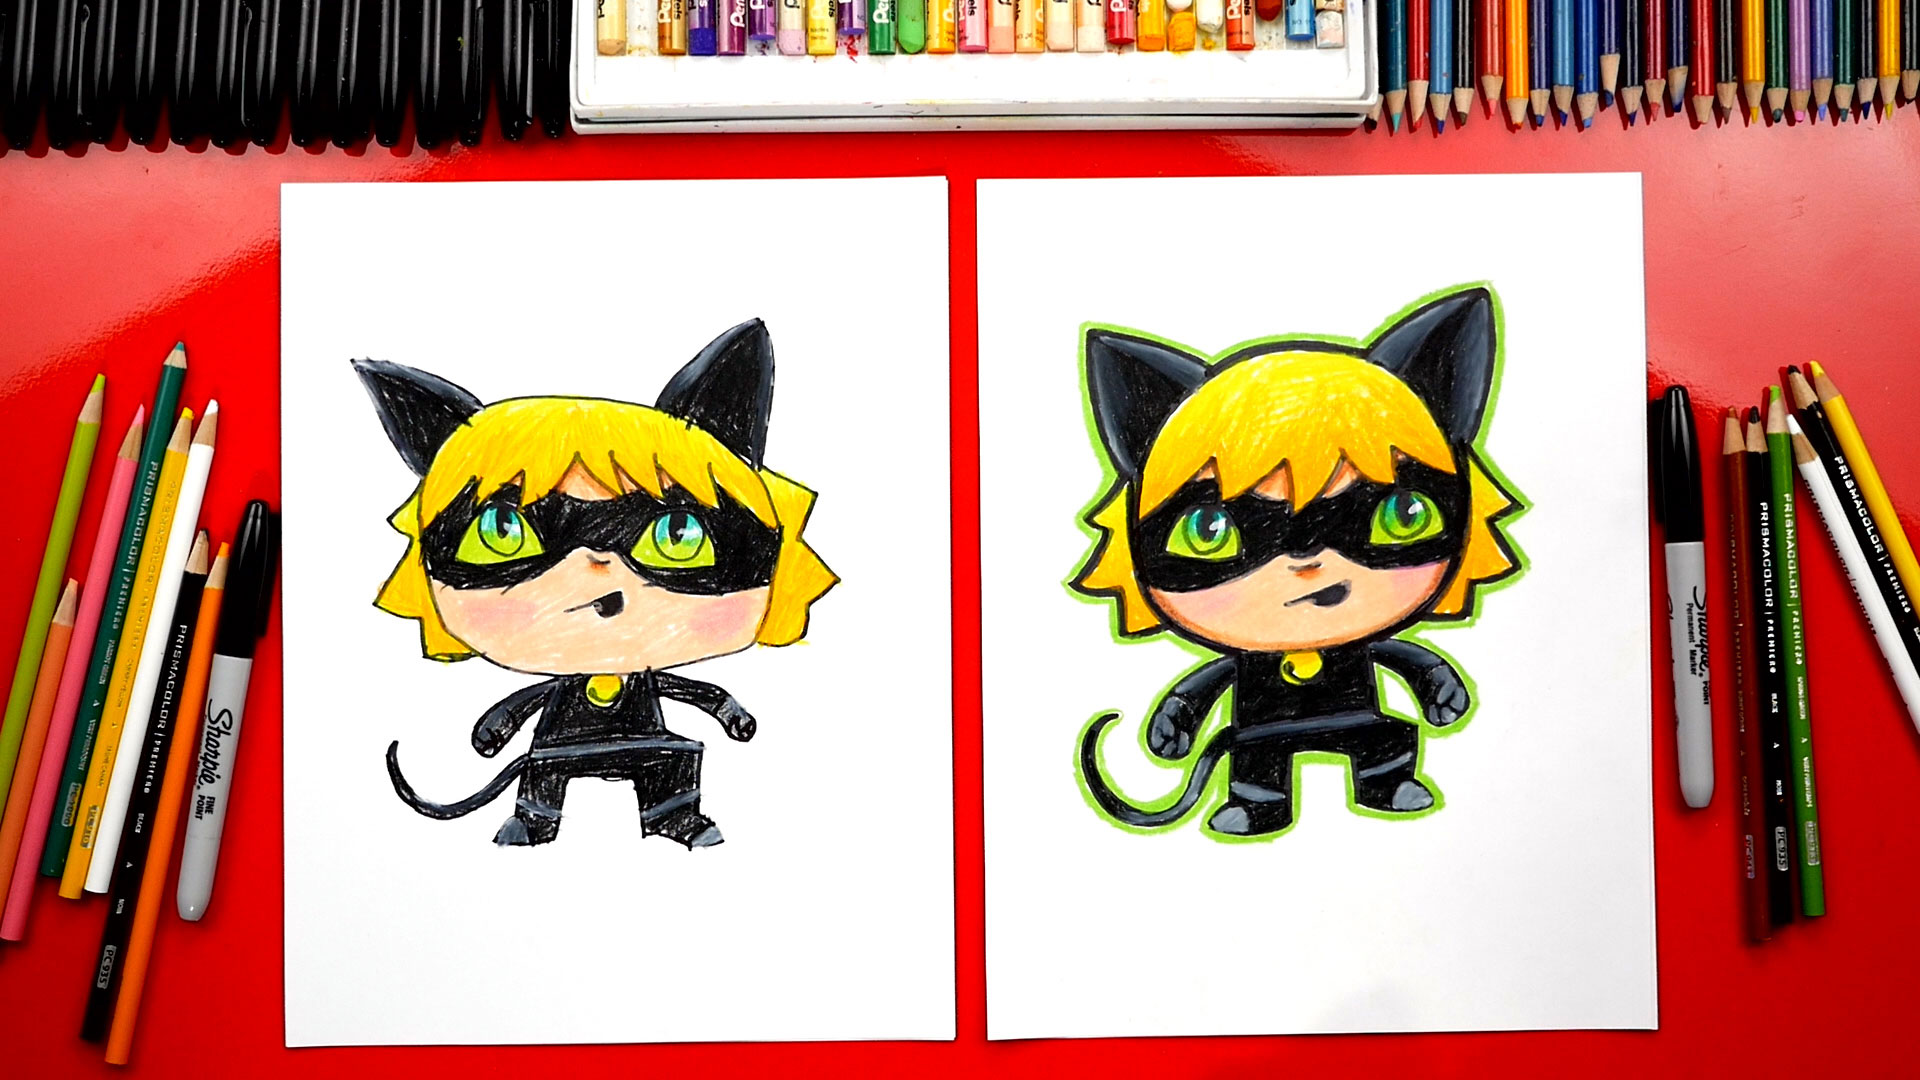 Happy family happy family in continuous line art drawing style. How To Draw Cat Noir From Miraculous Ladybug - Art For